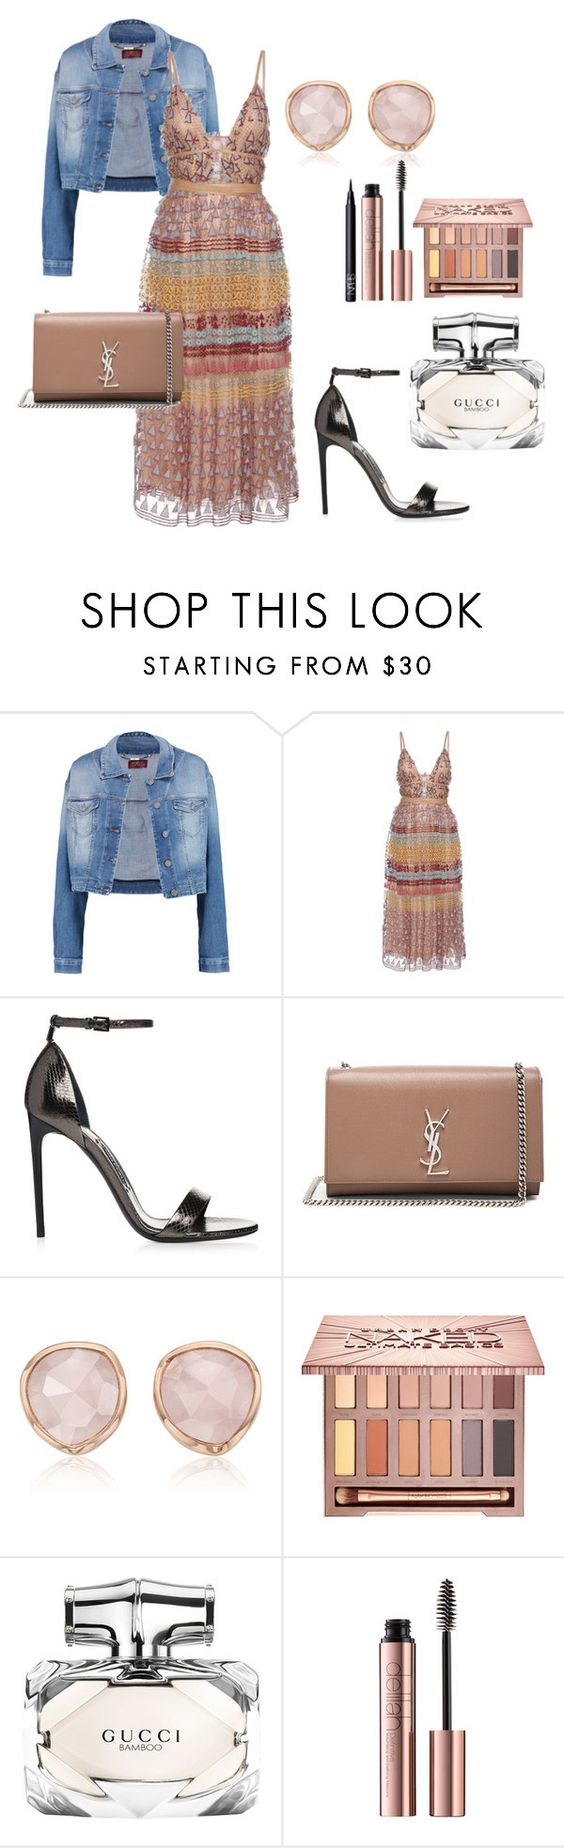 """""""Untitled #47"""" by deslightwood ❤ liked on Polyvore featuring 7 For All Mankind, Valentino, Yves Saint Laurent, Monica Vinader, Urban Decay, Gucci and NARS Cosmetics"""